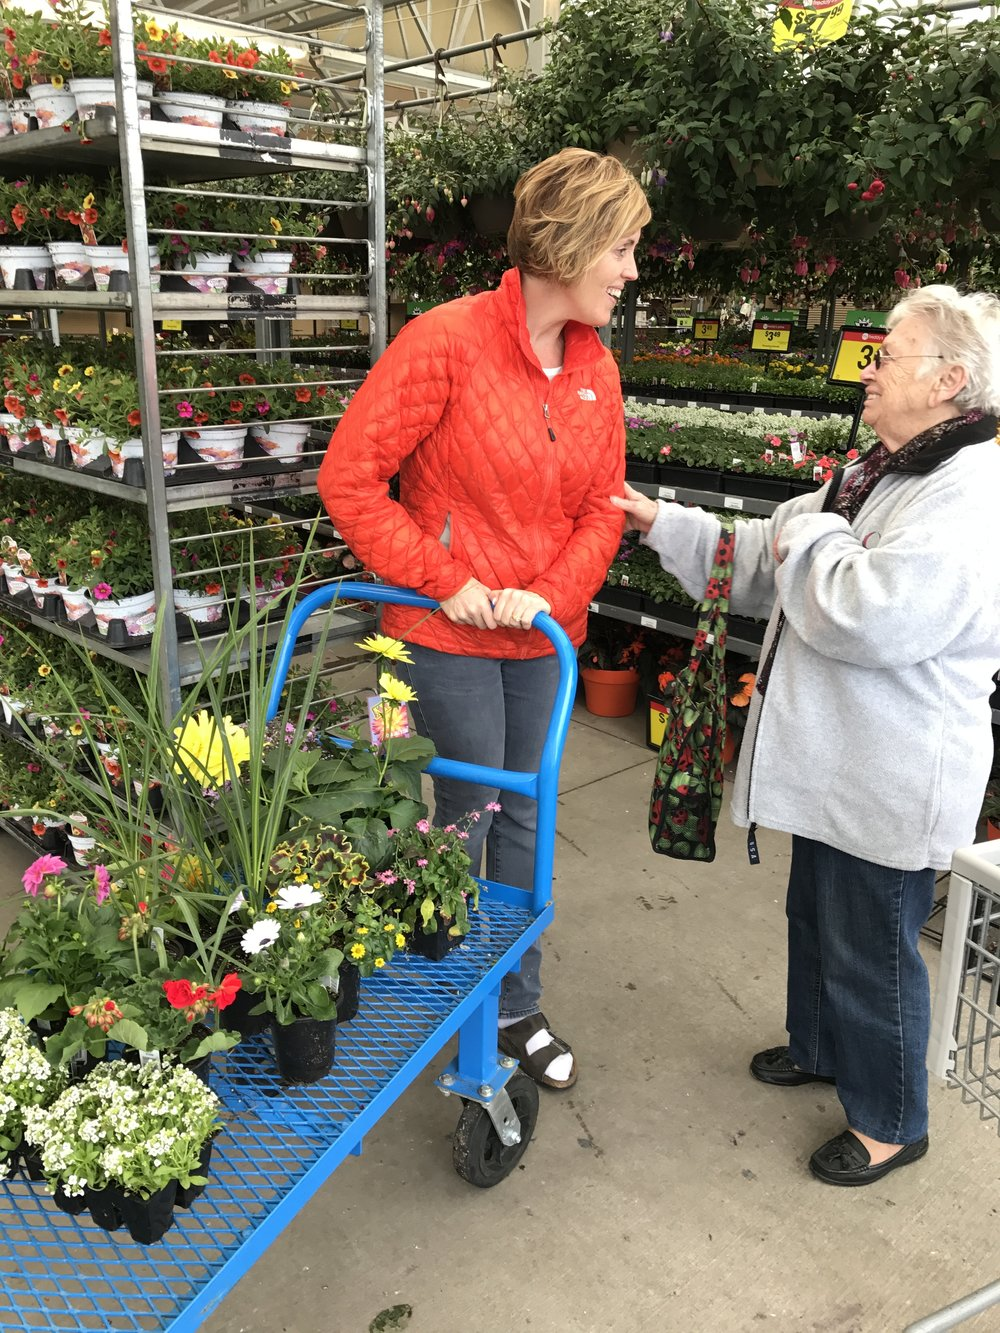 Buy birthday flowers and meeting this really sweet lady from Germany. I was so tickled that my hubby took a picture!